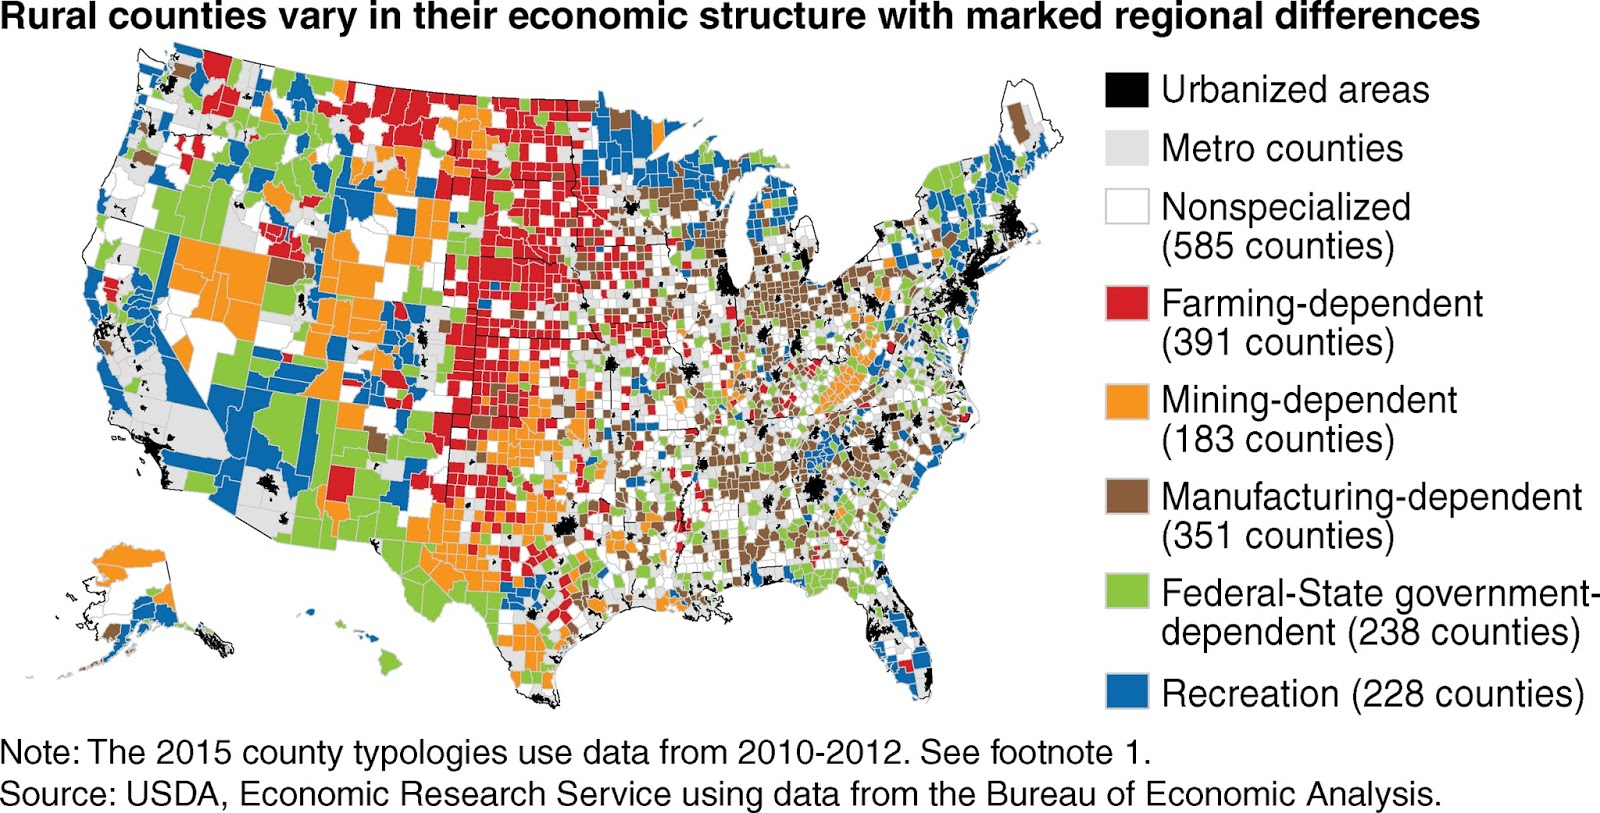 Rural counties vary in their economics structure with marked regional differences